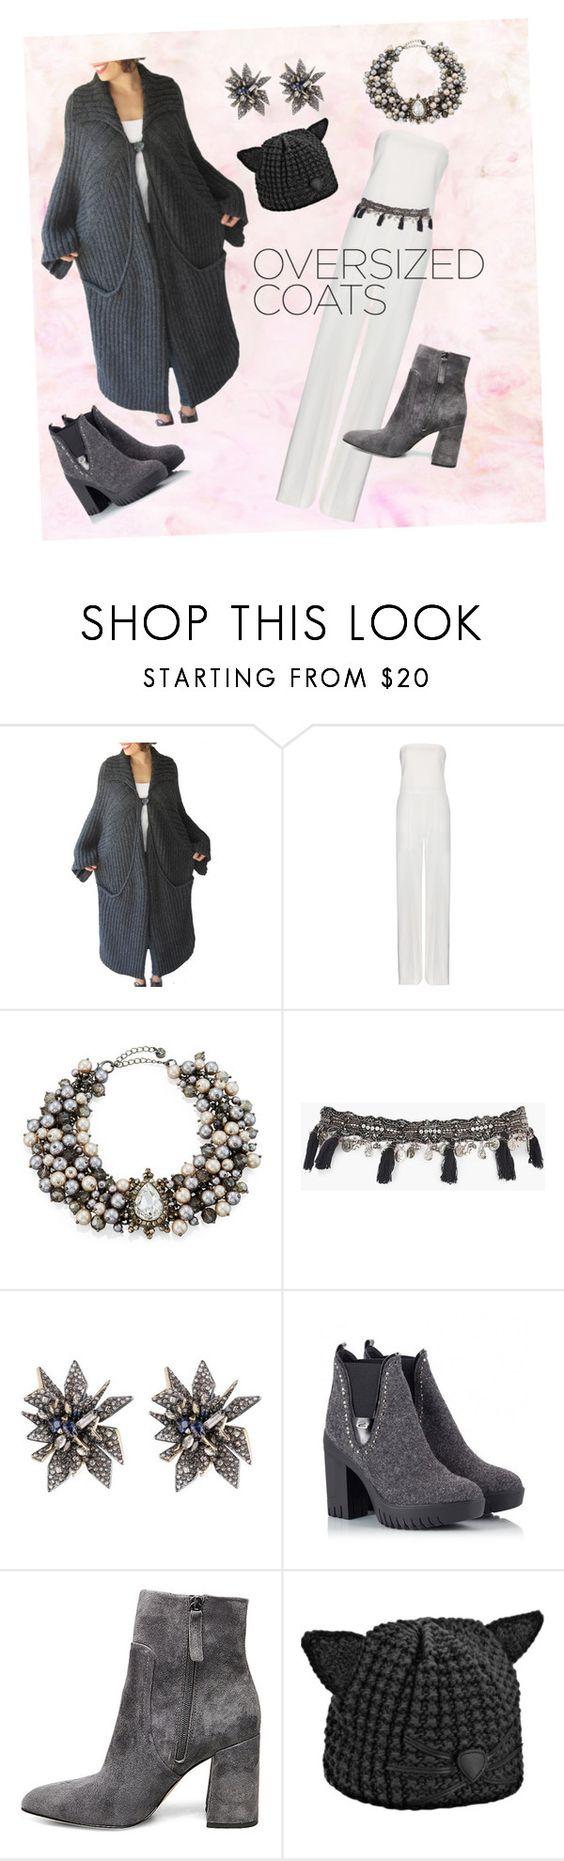 """""""oversized delight"""" by kkornak ❤ liked on Polyvore featuring STELLA McCARTNEY, Lydell NYC, Boohoo, Alexis Bittar, Alberto Guardiani, Steve Madden and Karl Lagerfeld"""